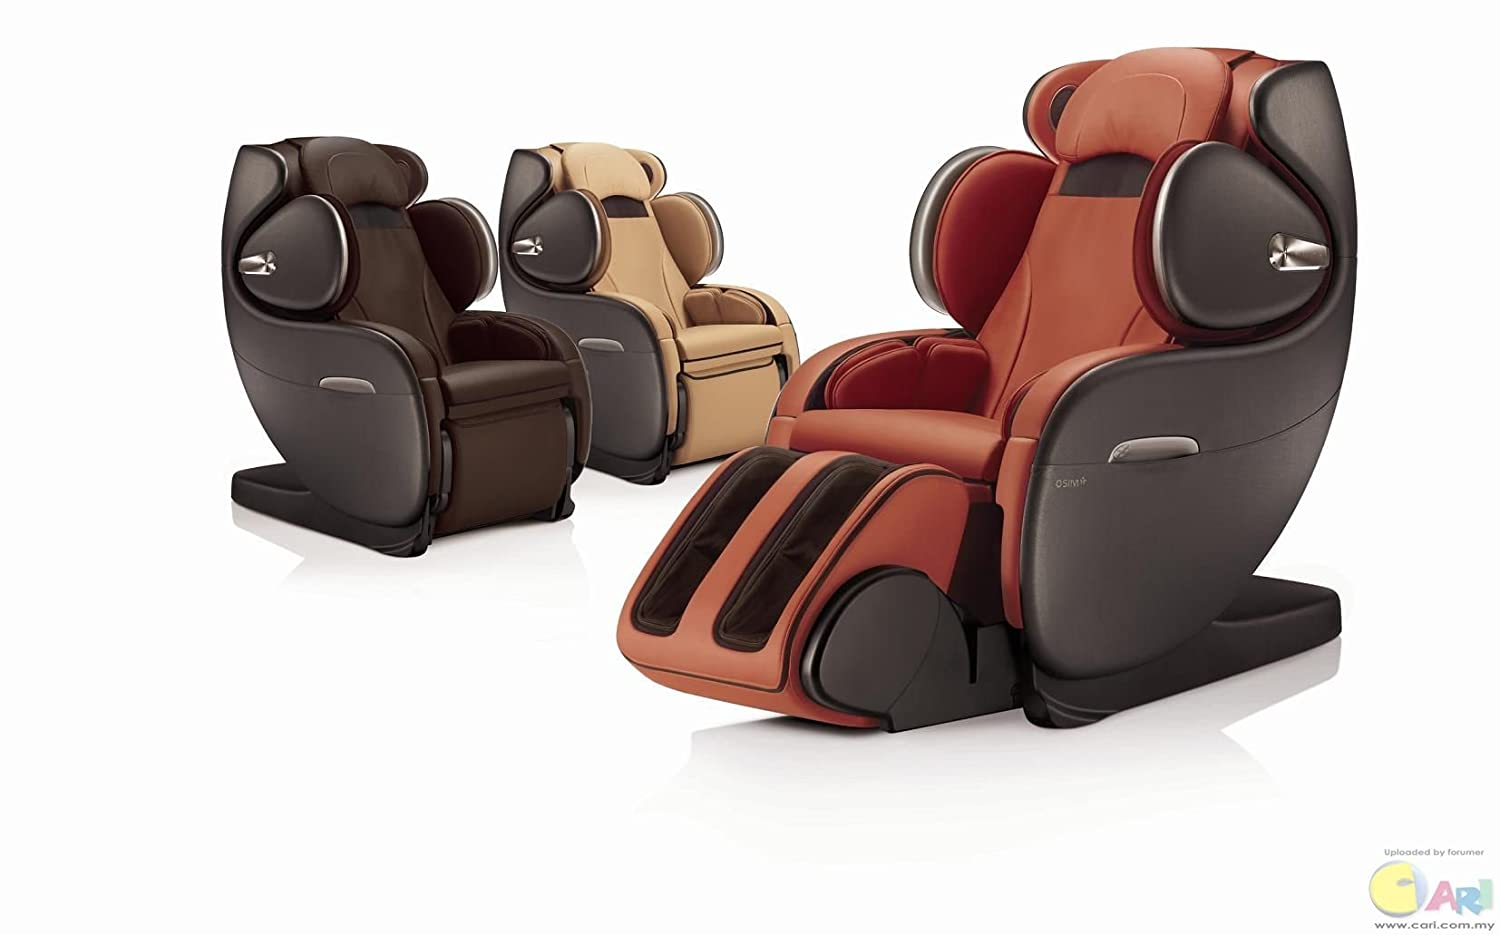 copper handsome a features and massage timeless teal chair red ulove osim brown design dreamy gorgeous the luvvvvv img dashing feeling aggylow different with colours in white charming